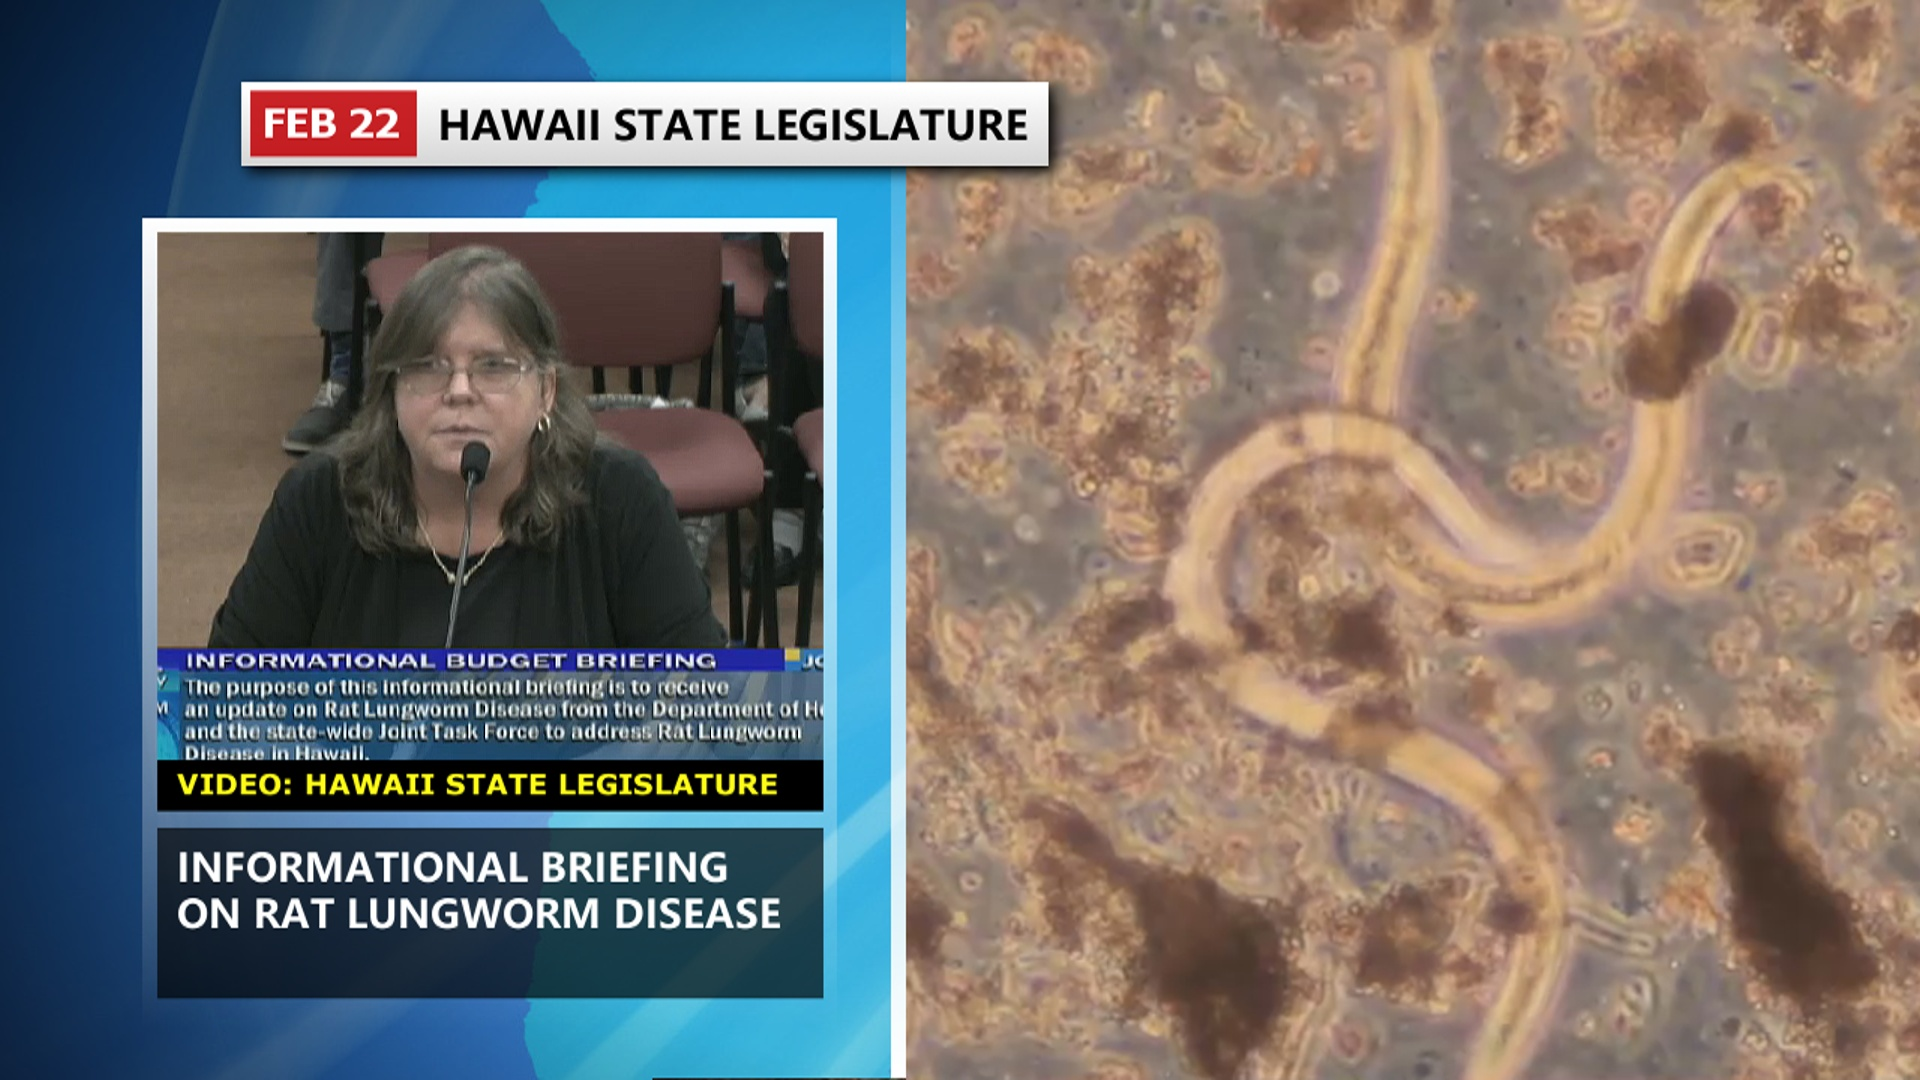 VIDEO: Rat Lungworm Disease Briefing At The Capitol